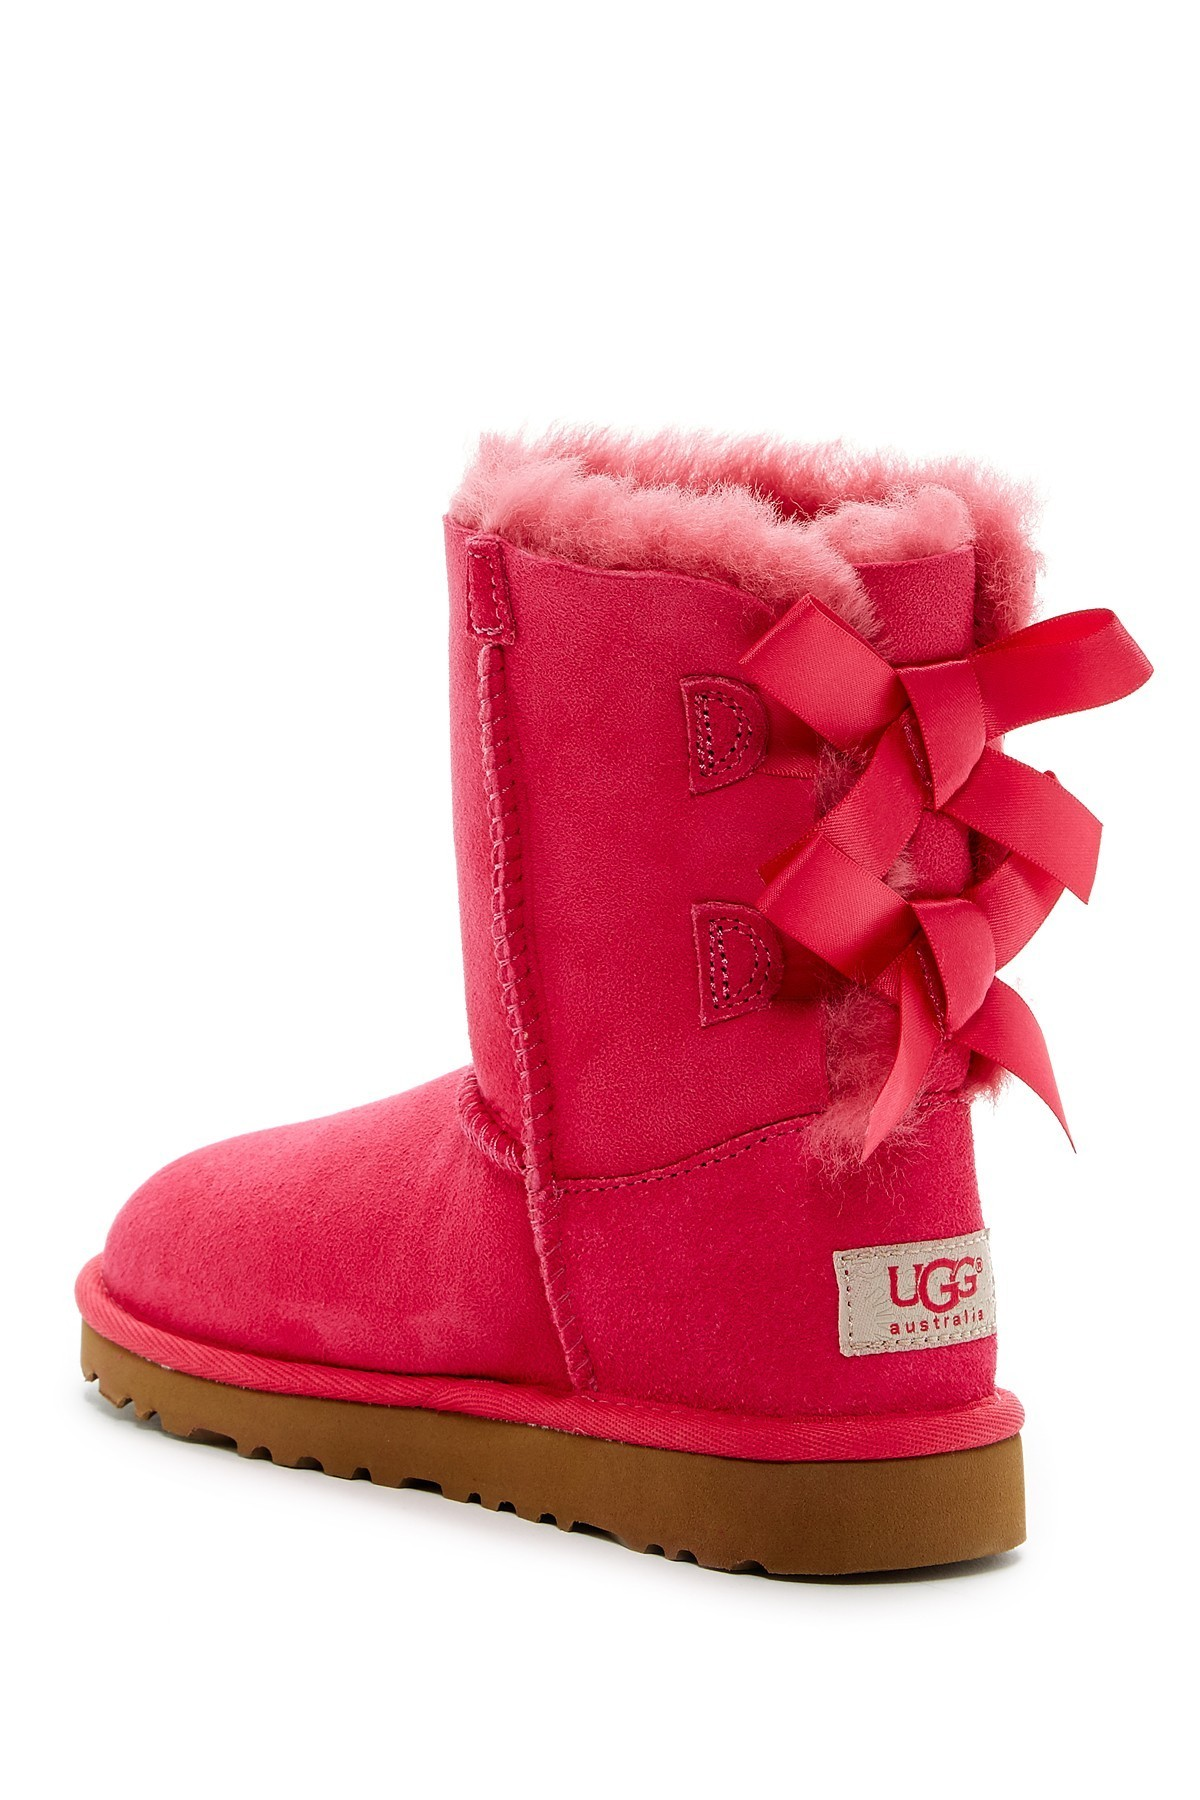 UGG セール! Bailey Bow GenuineシープスキンブーツToddler(4色)